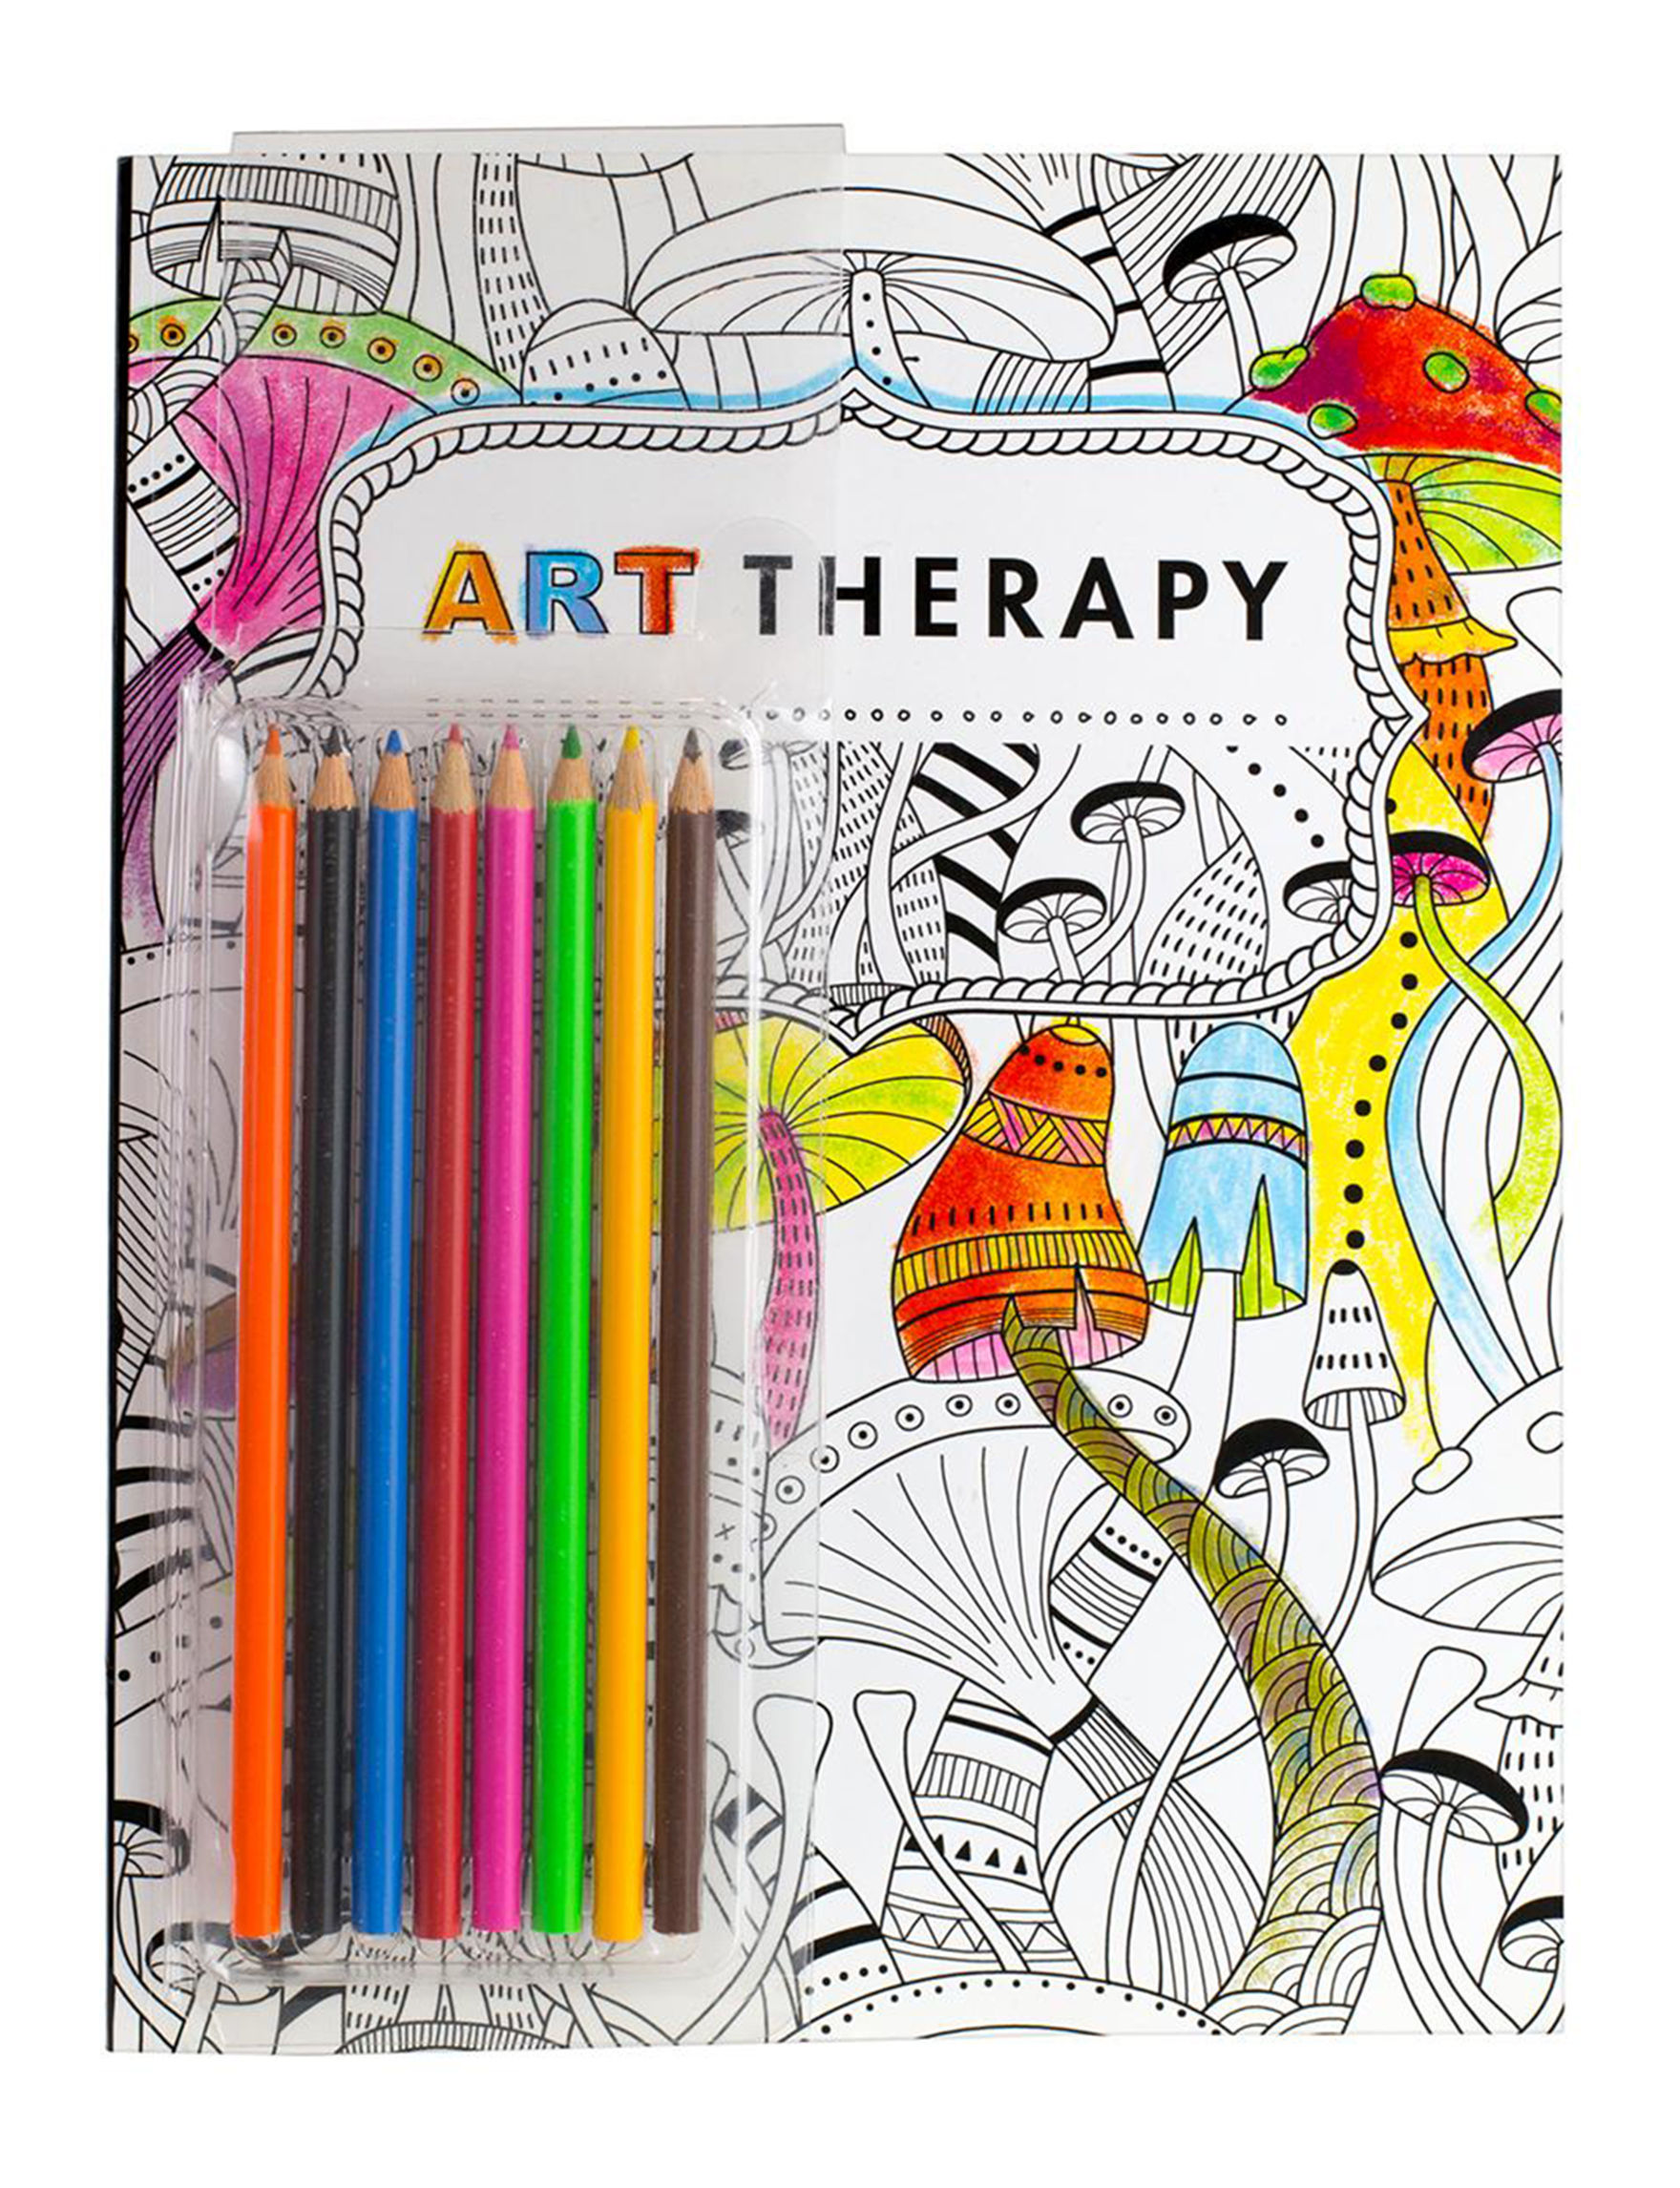 Coloring book for adults for pc - Tri Coastal 9 Pc Art Therapy Coloring Book Pencils Set